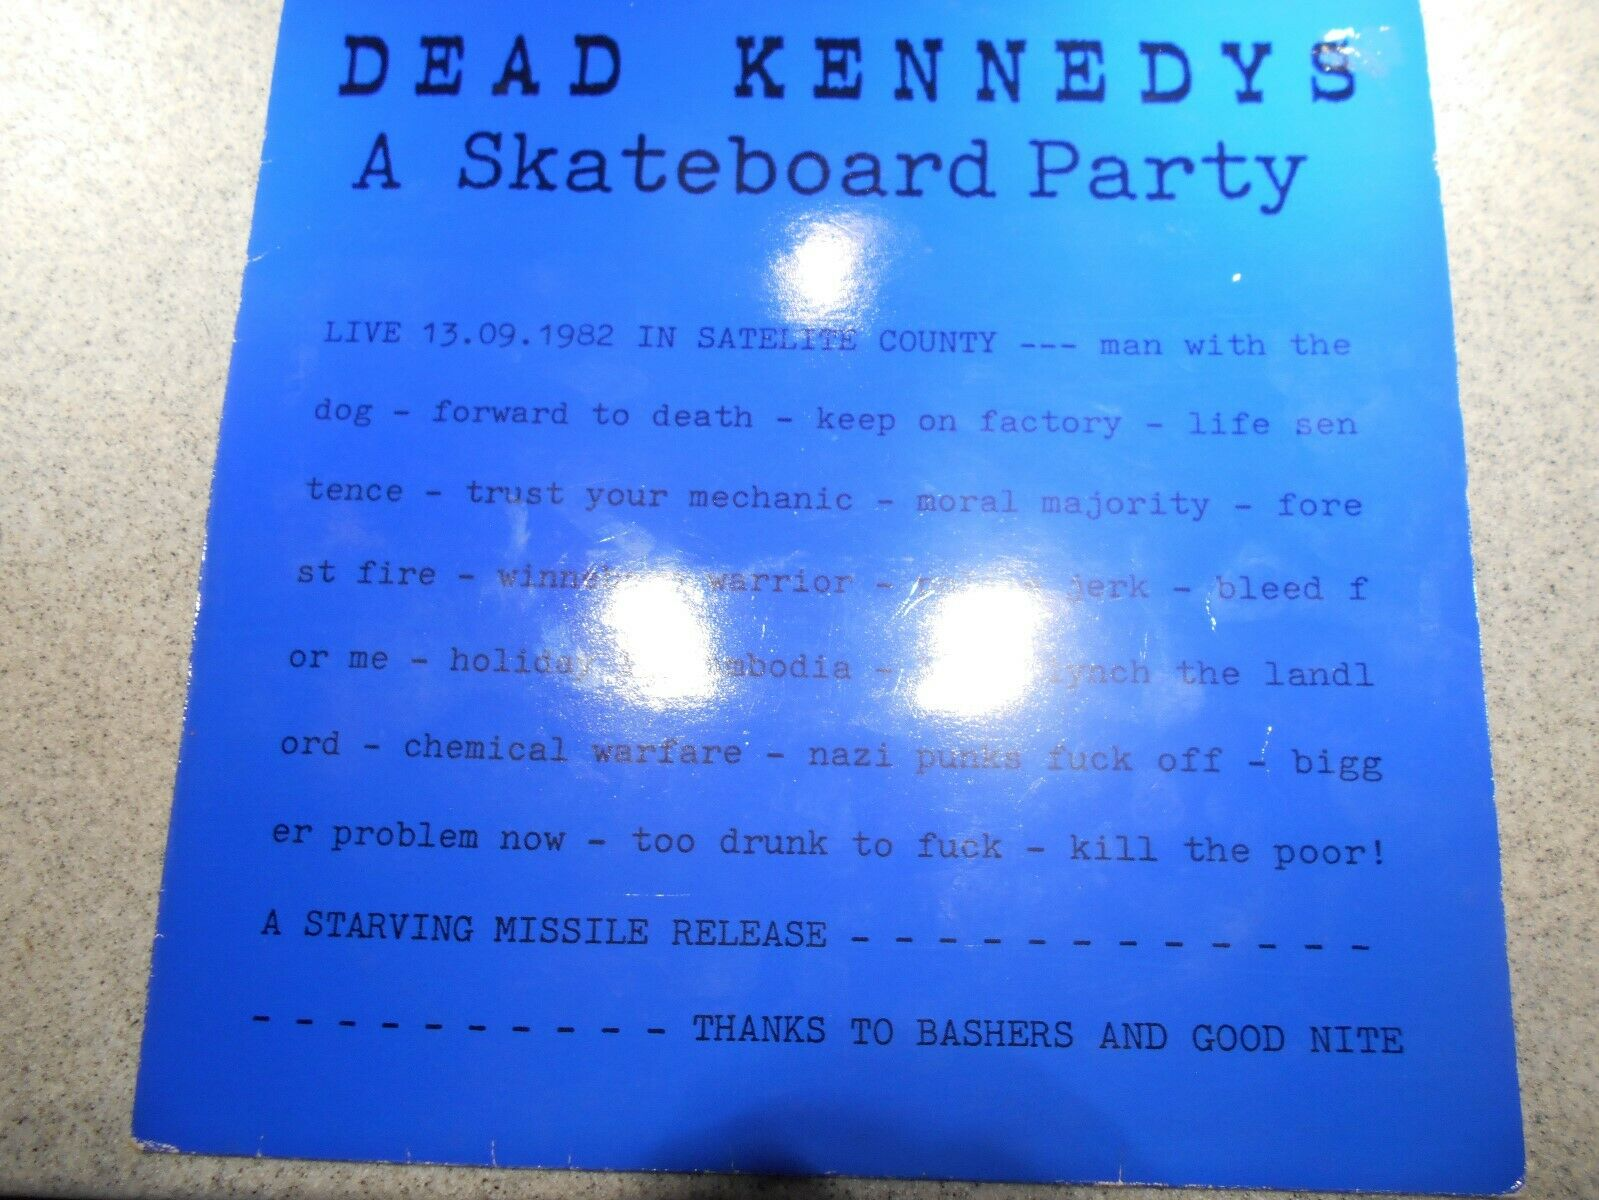 DEAD KENNEDYS   A SKATEBOARD PARTY    LP   STARVING MISSLE LABEL